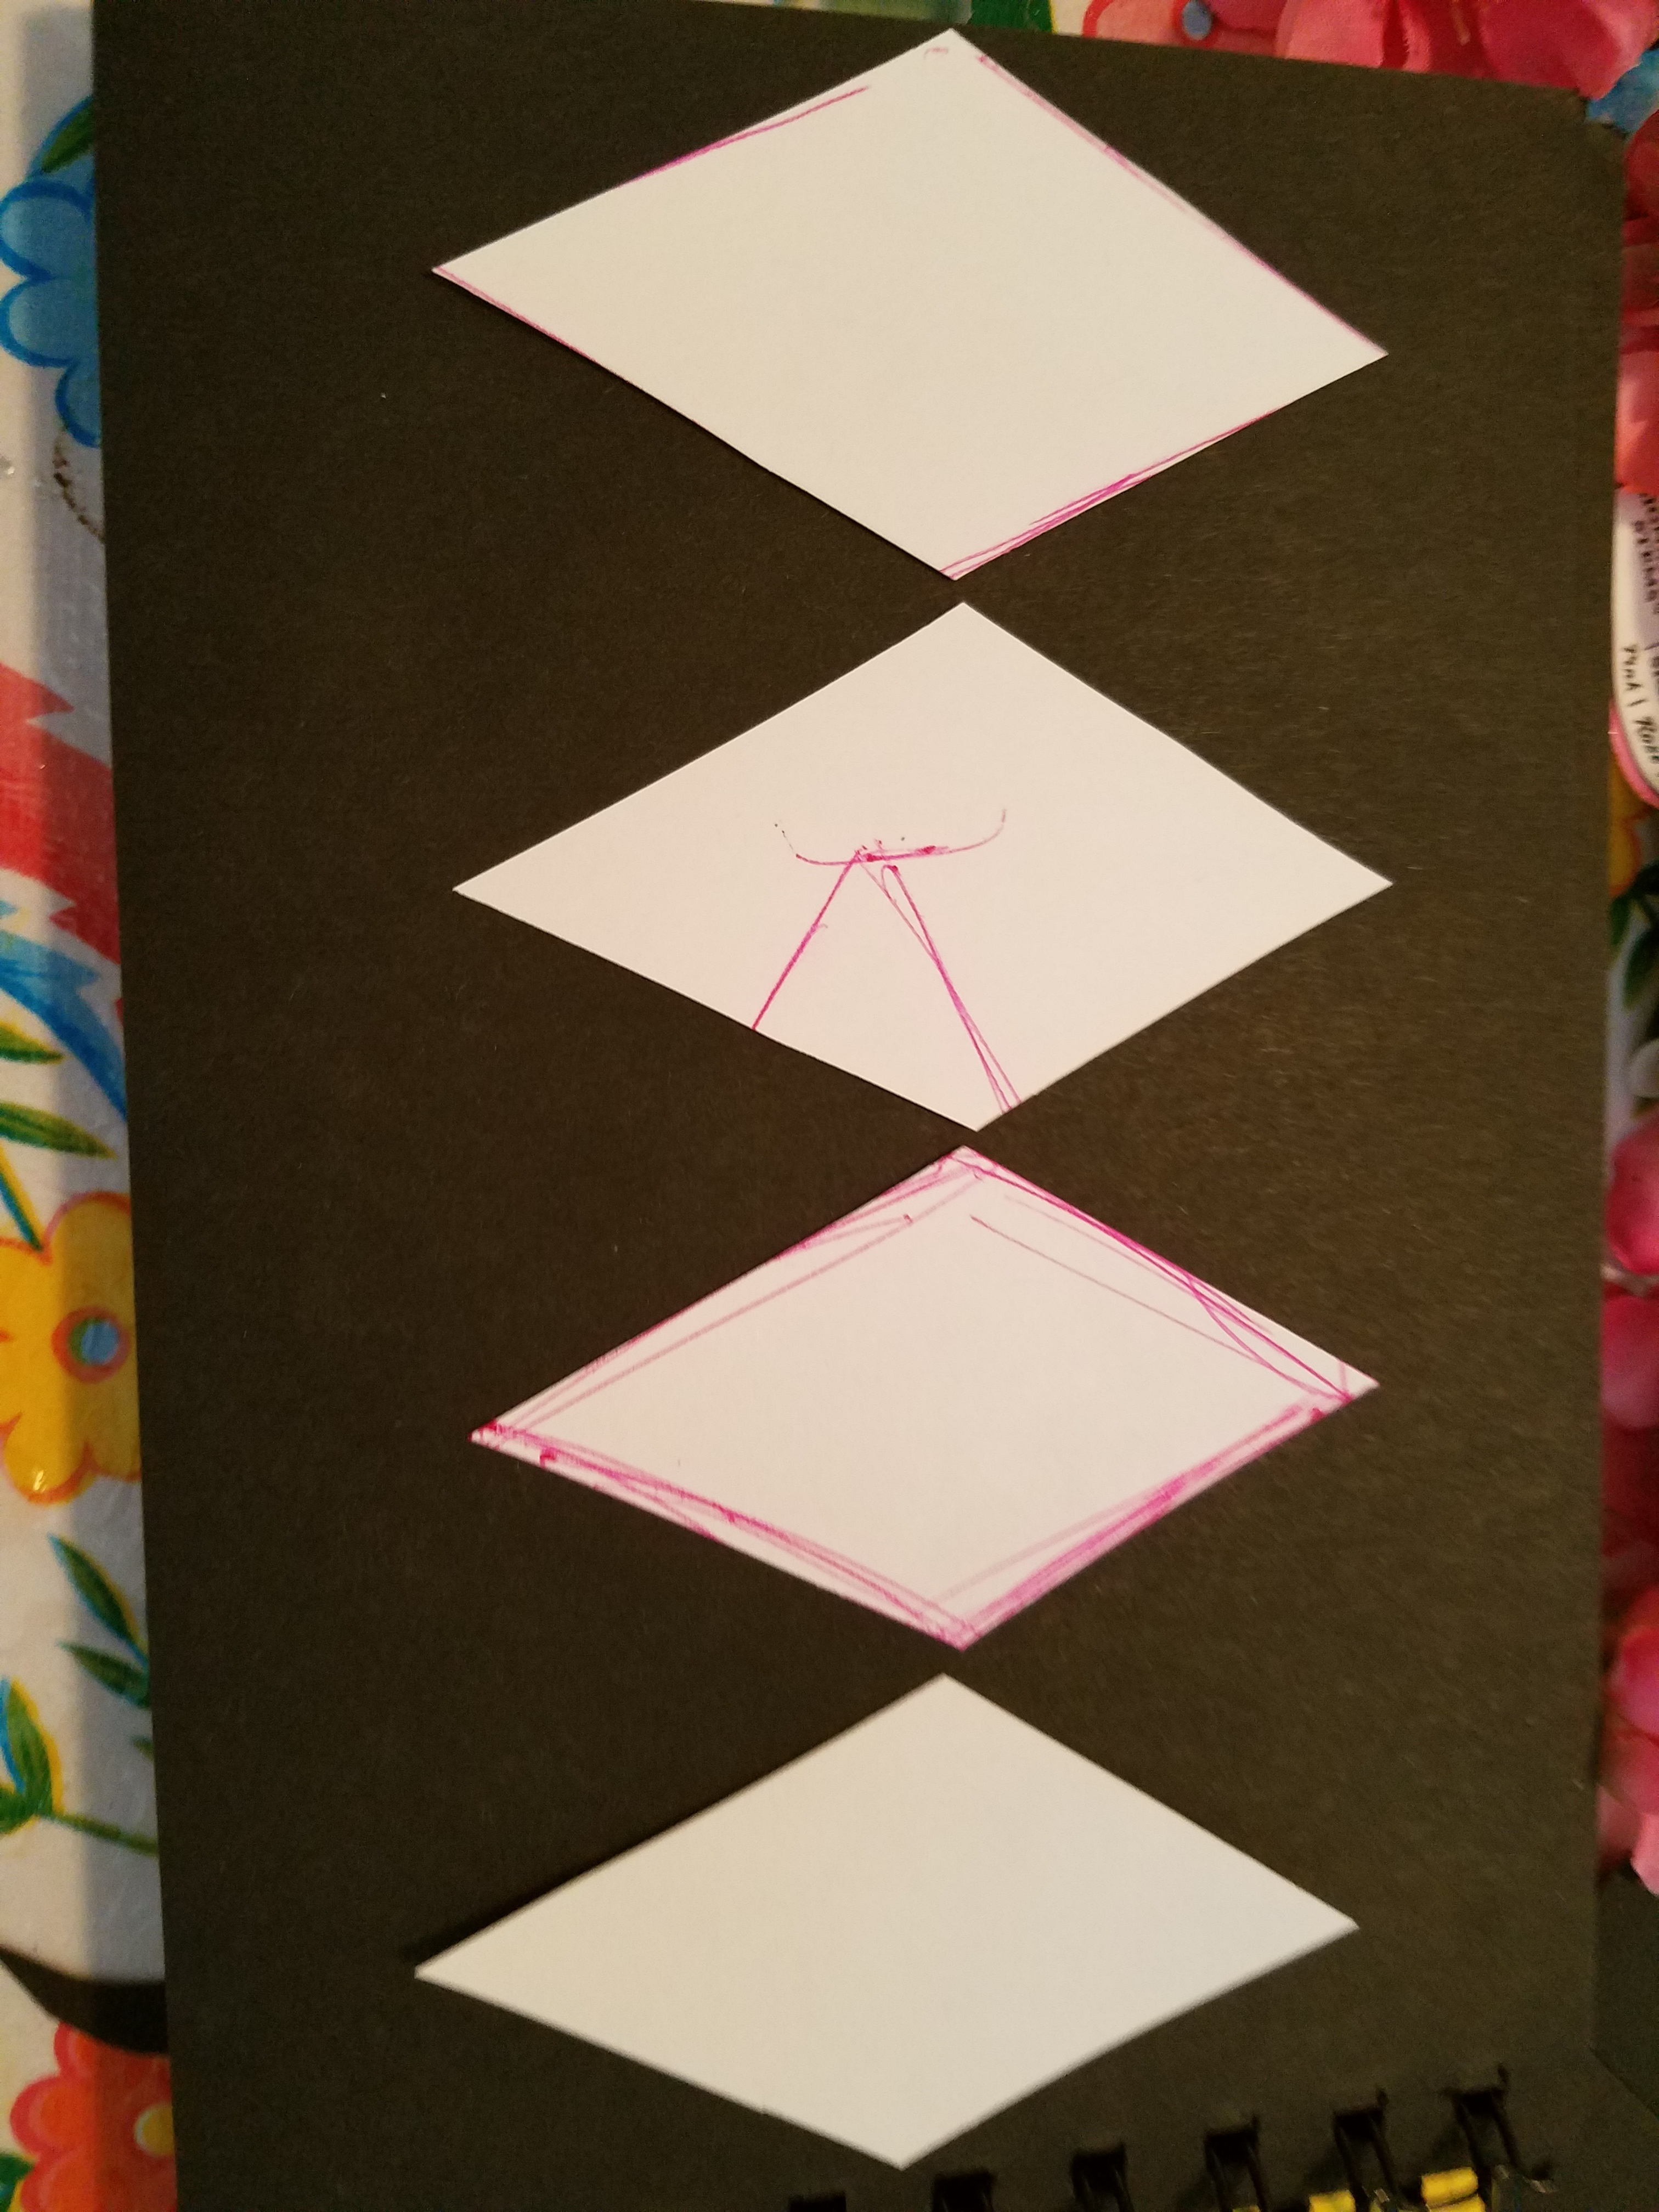 Picture of Add Diamond Shape to the Arrow.